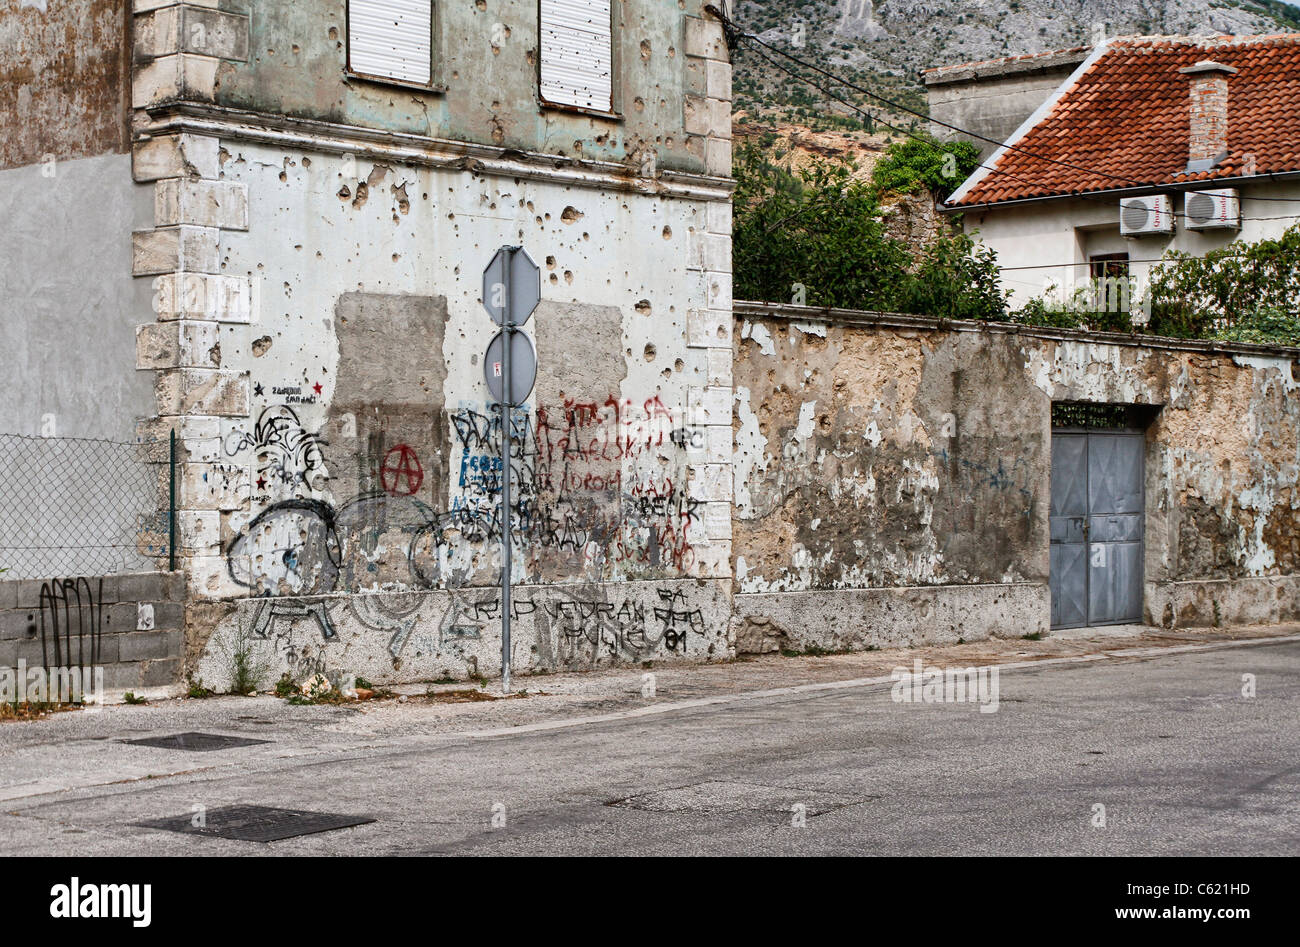 War damaged buildings in Mostar, Bosnia and Herzegovina - Stock Image